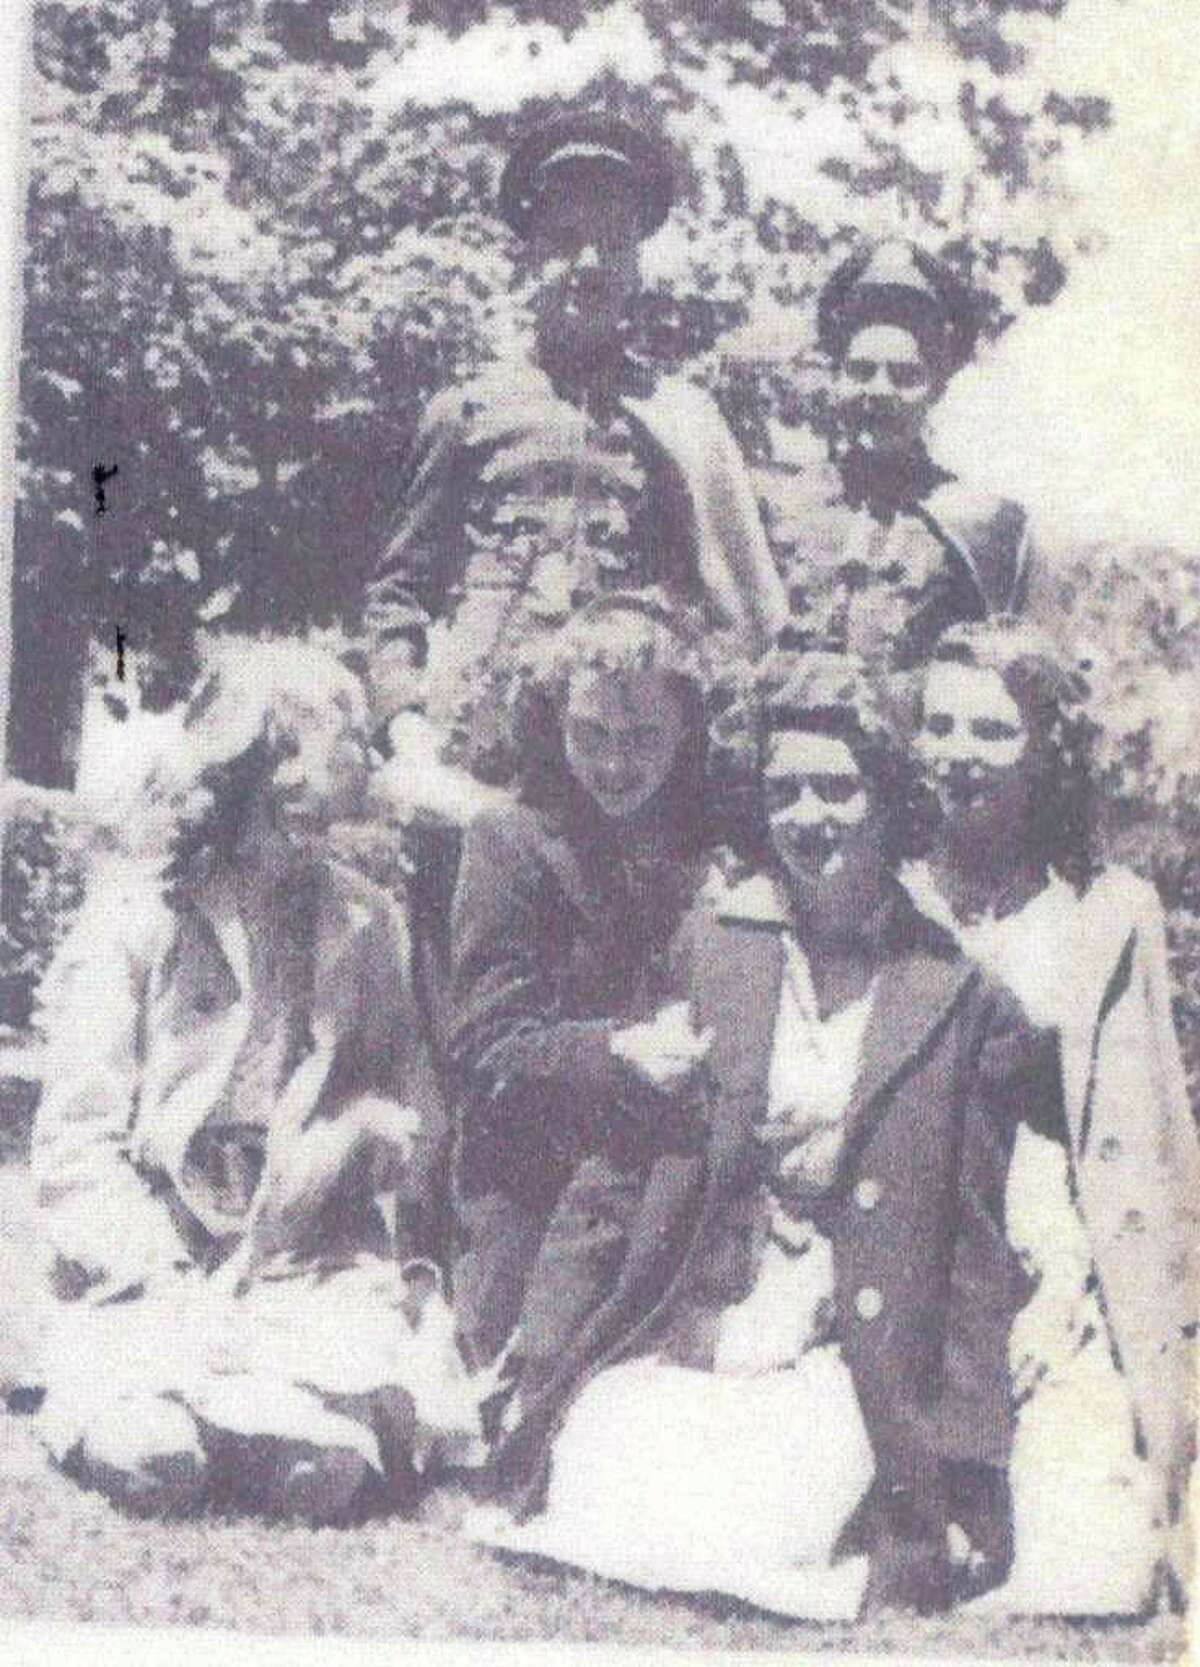 Charlie Mitchell, in center, back row, is seen here in 1944, when he was a freshman at Danbury High School.